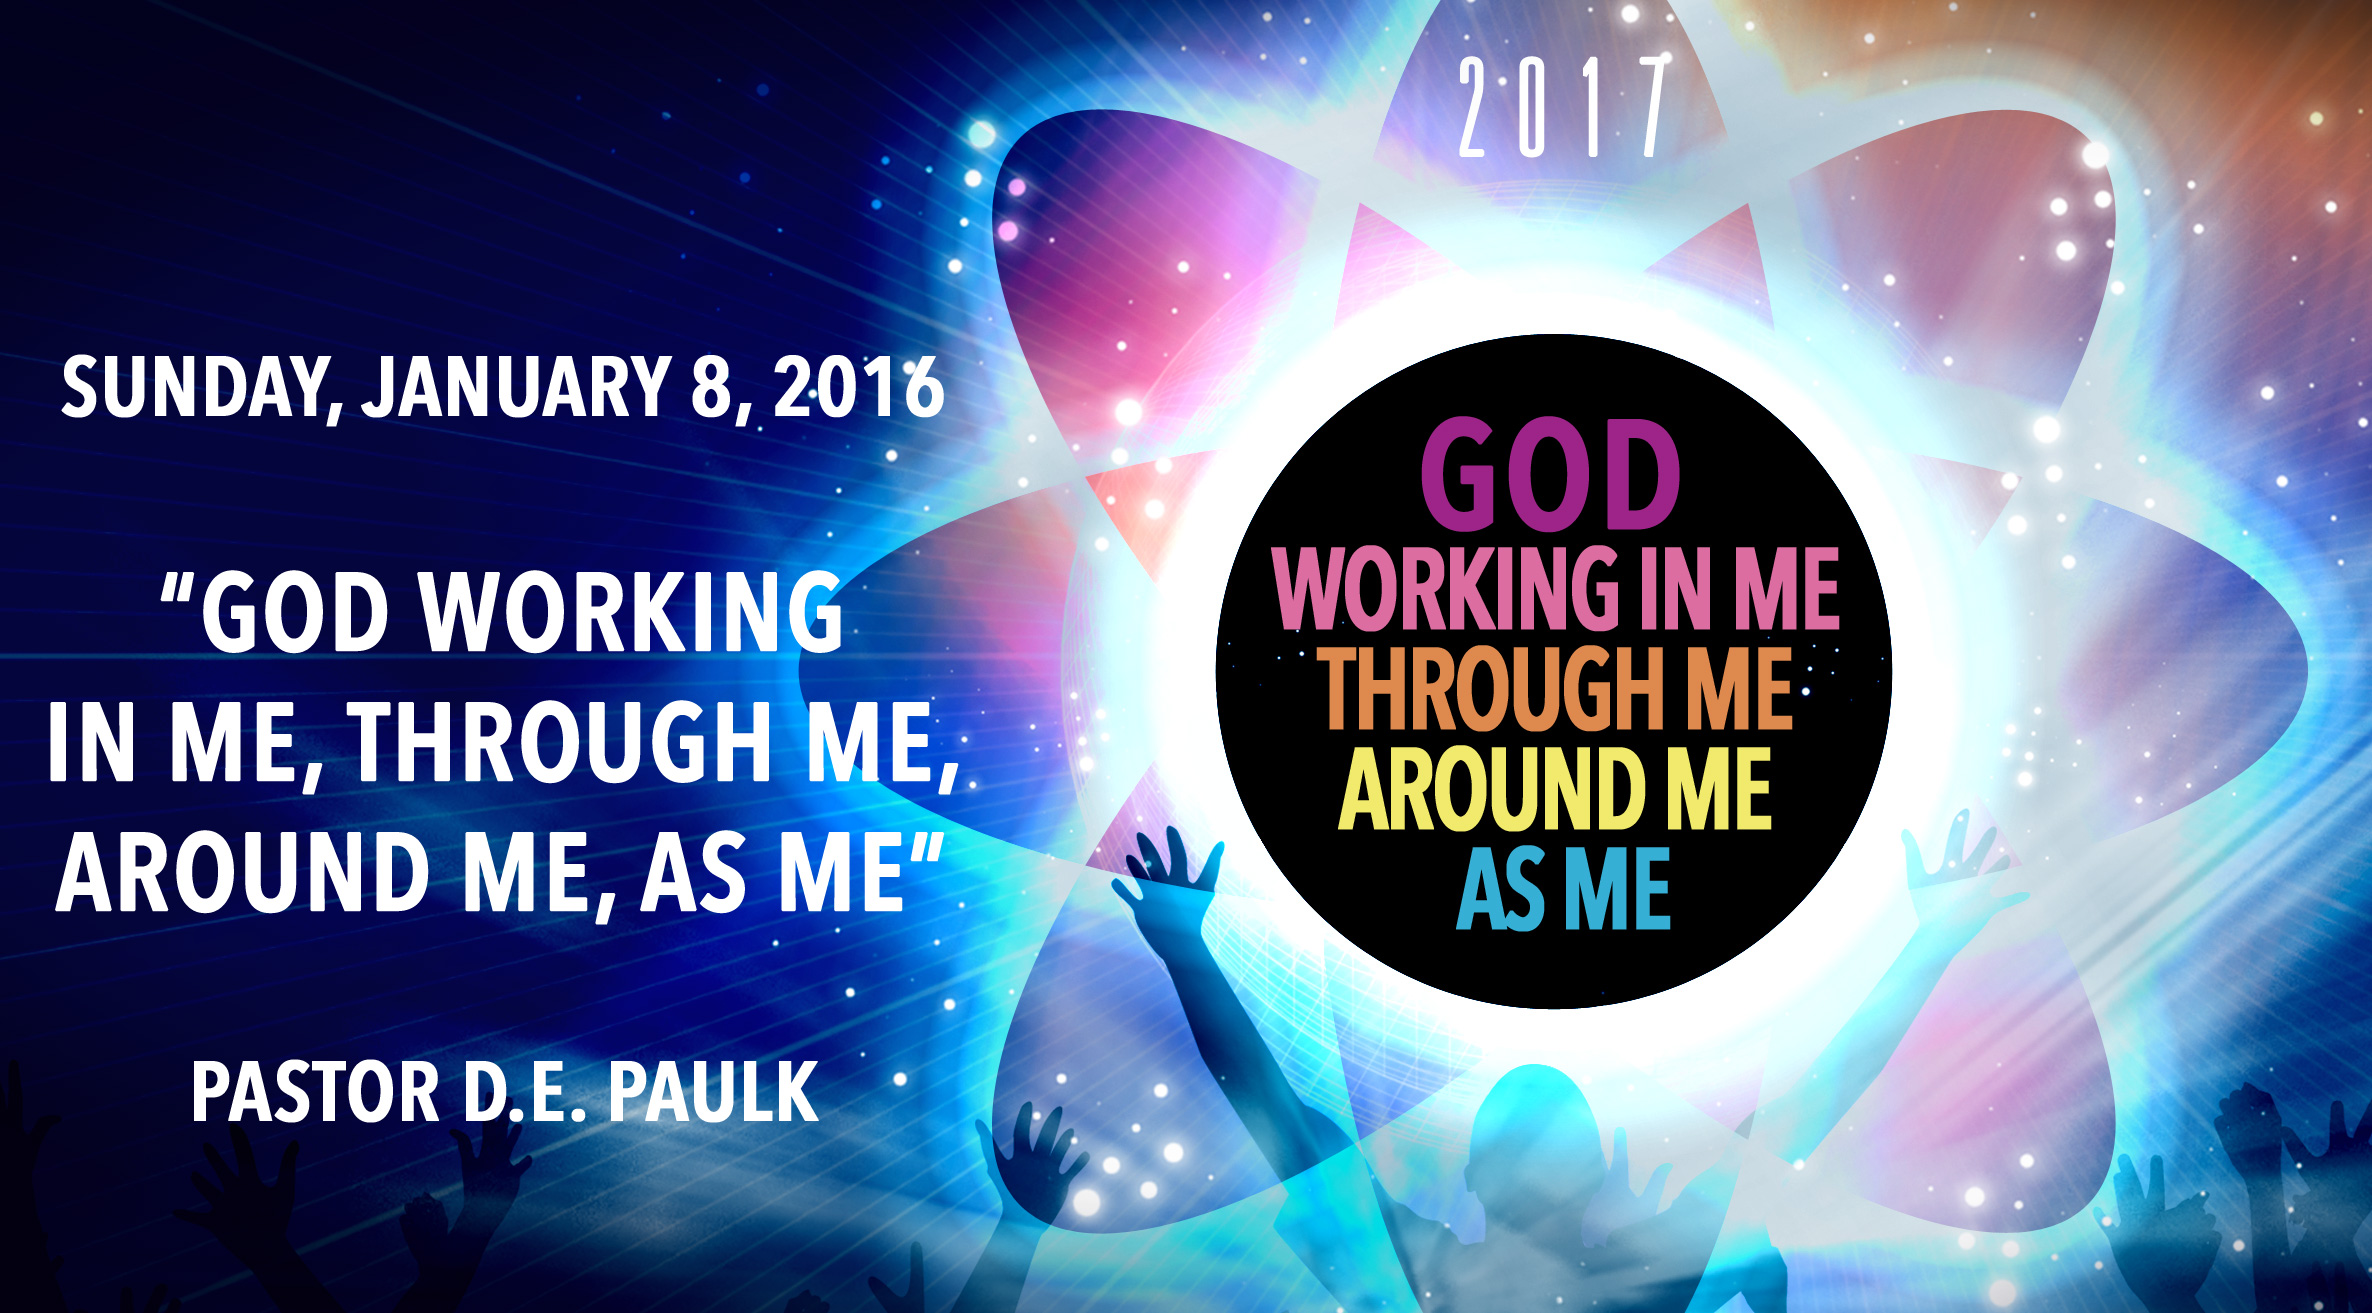 2107 - God Working in Me, Through Me, Around Me and As Me